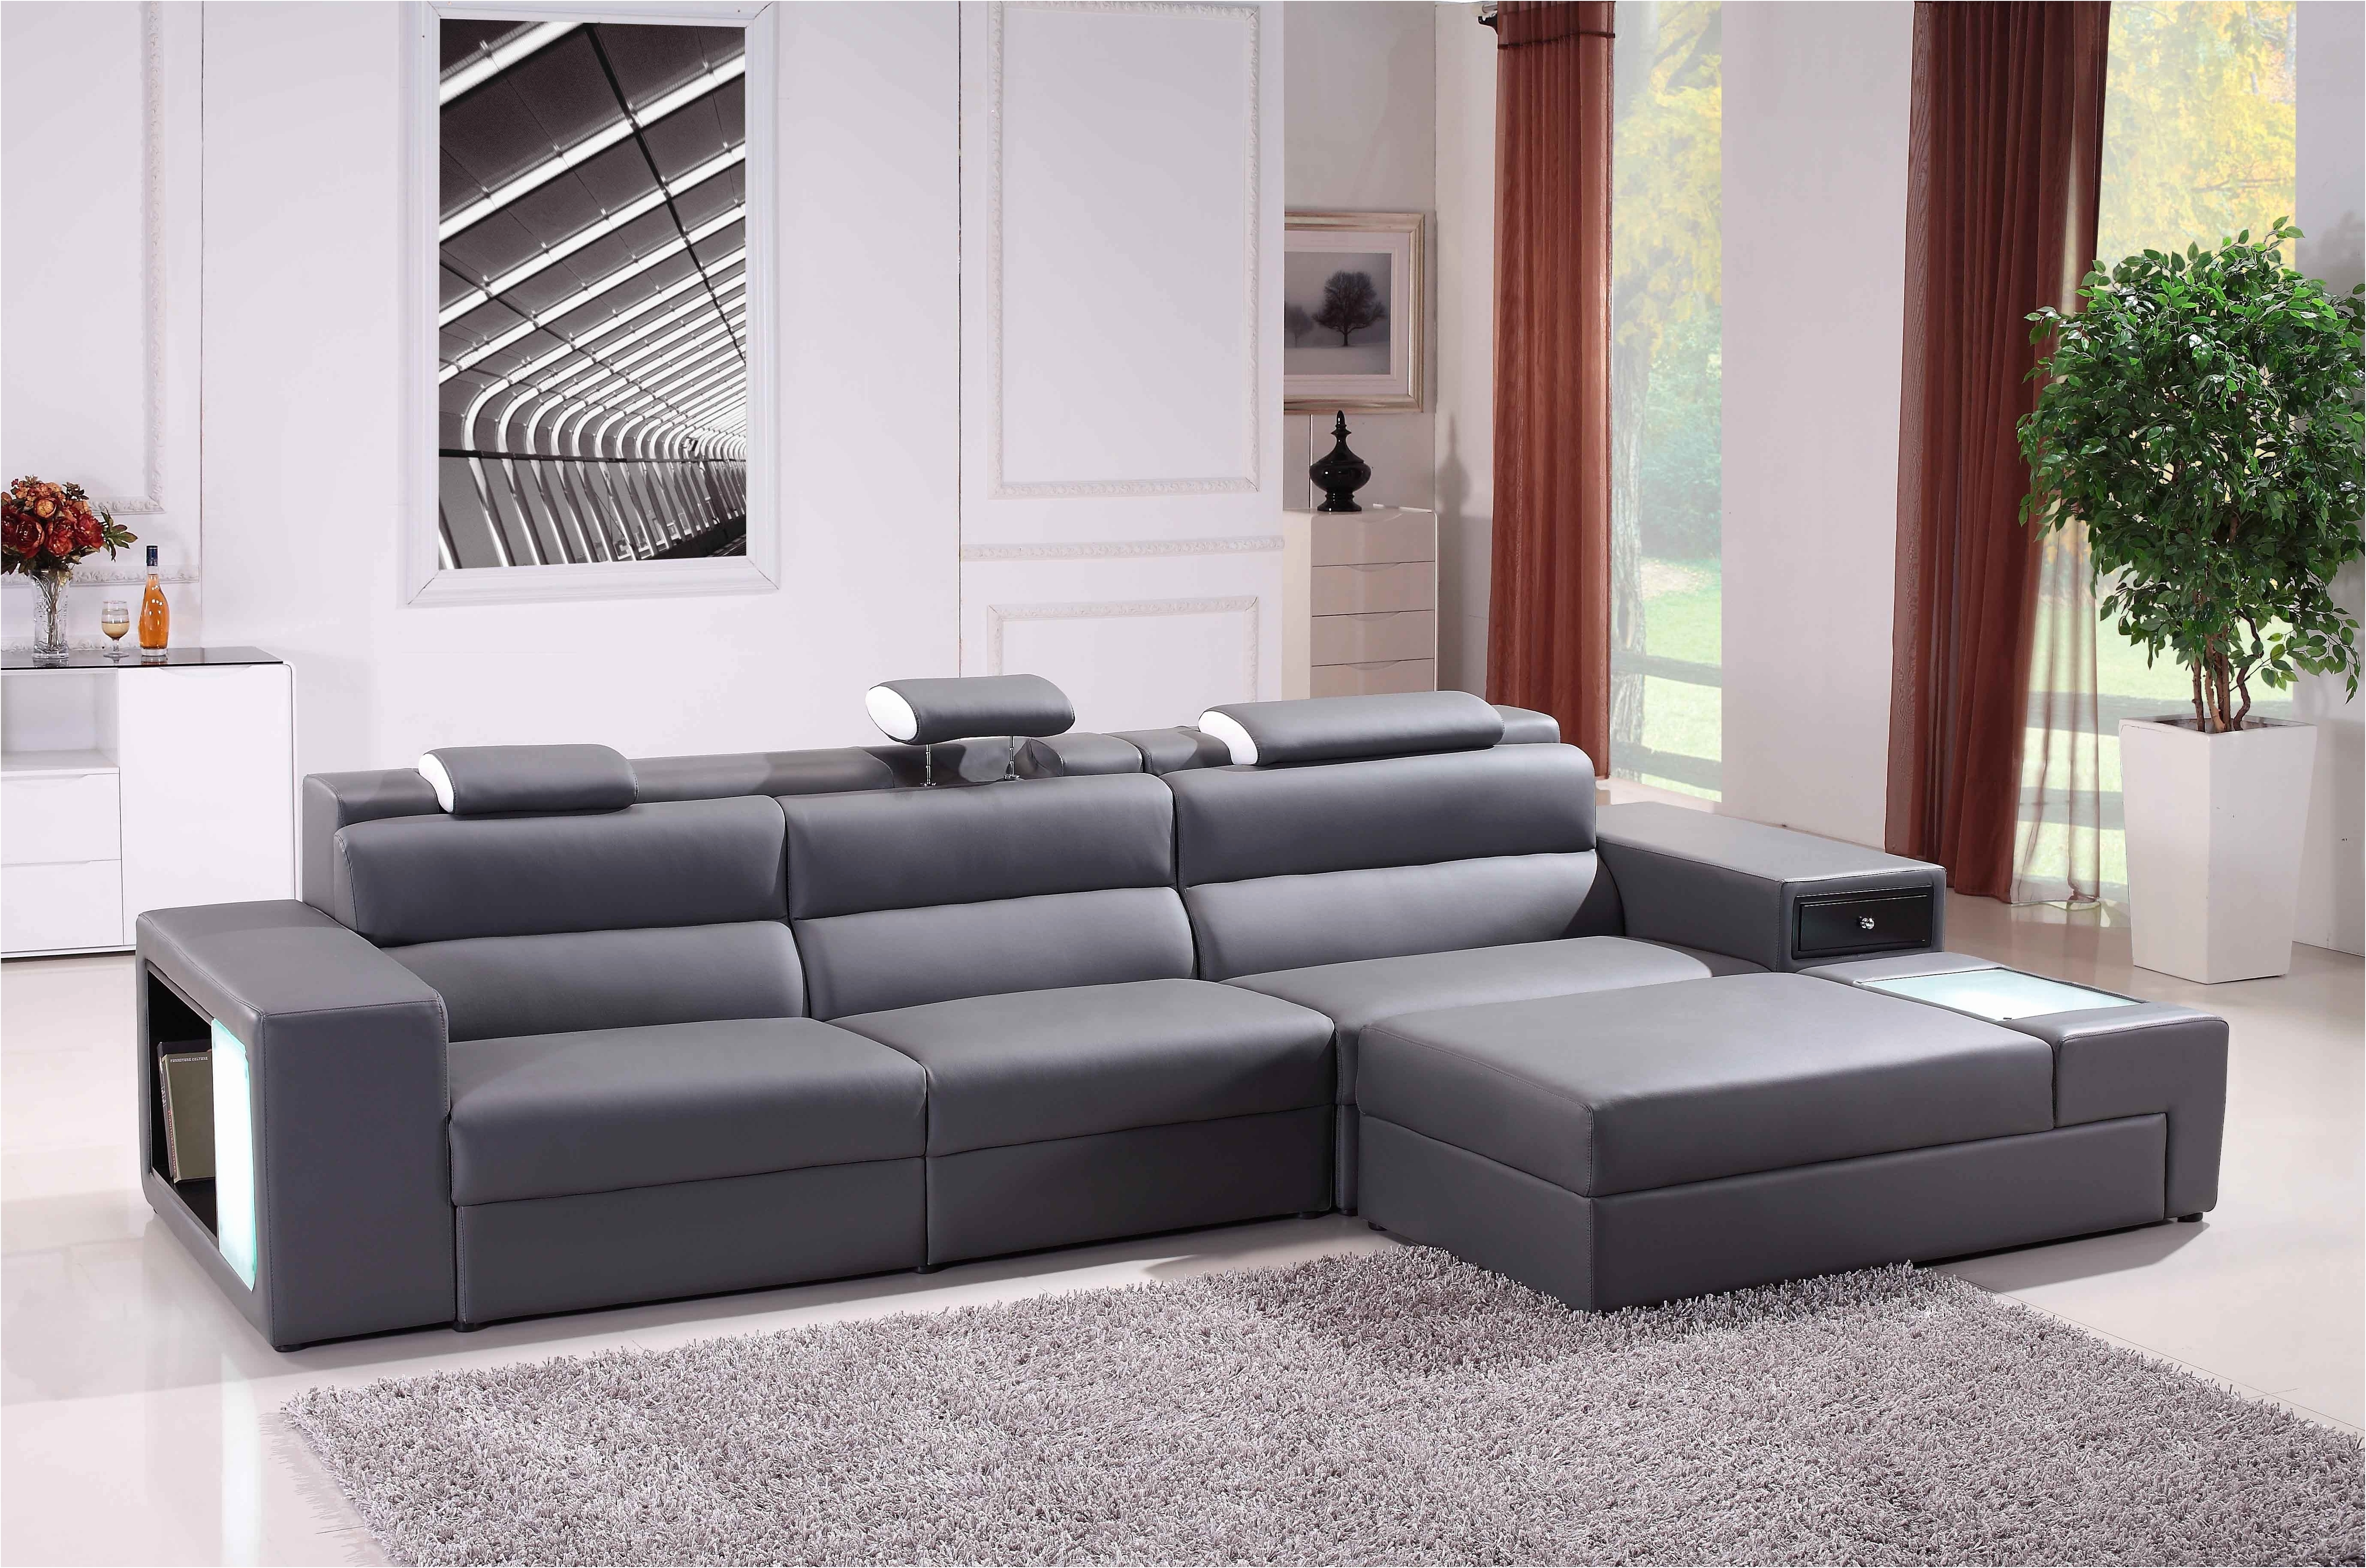 Widely Used Quebec Sectional Sofas With Regard To Light Gray Sectional Sofa Modern Grey Fabric Leather Mason Divani (View 8 of 15)